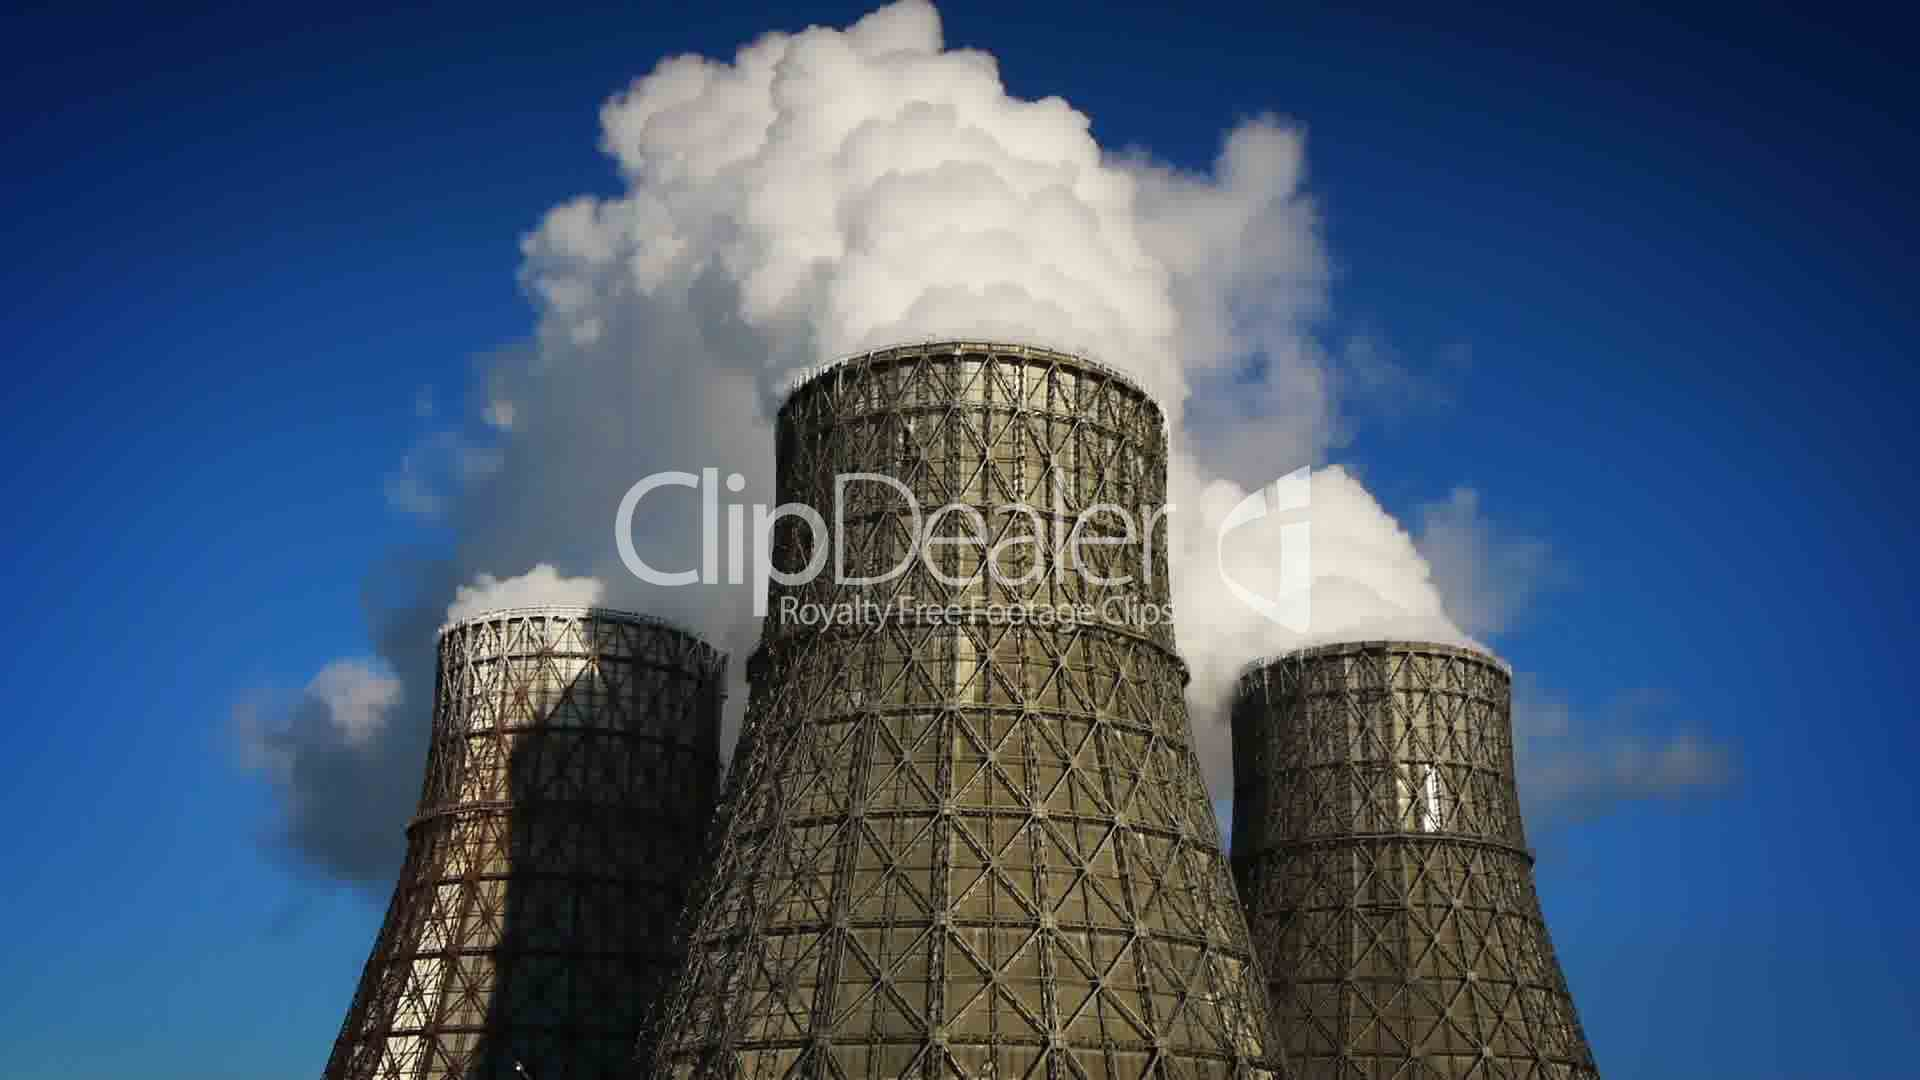 #143D7A Water Cooling Tower At Winter: Vídeos De Archivo Y Clips  Recommended 7167 Water Cooled Tower pics with 1920x1080 px on helpvideos.info - Air Conditioners, Air Coolers and more